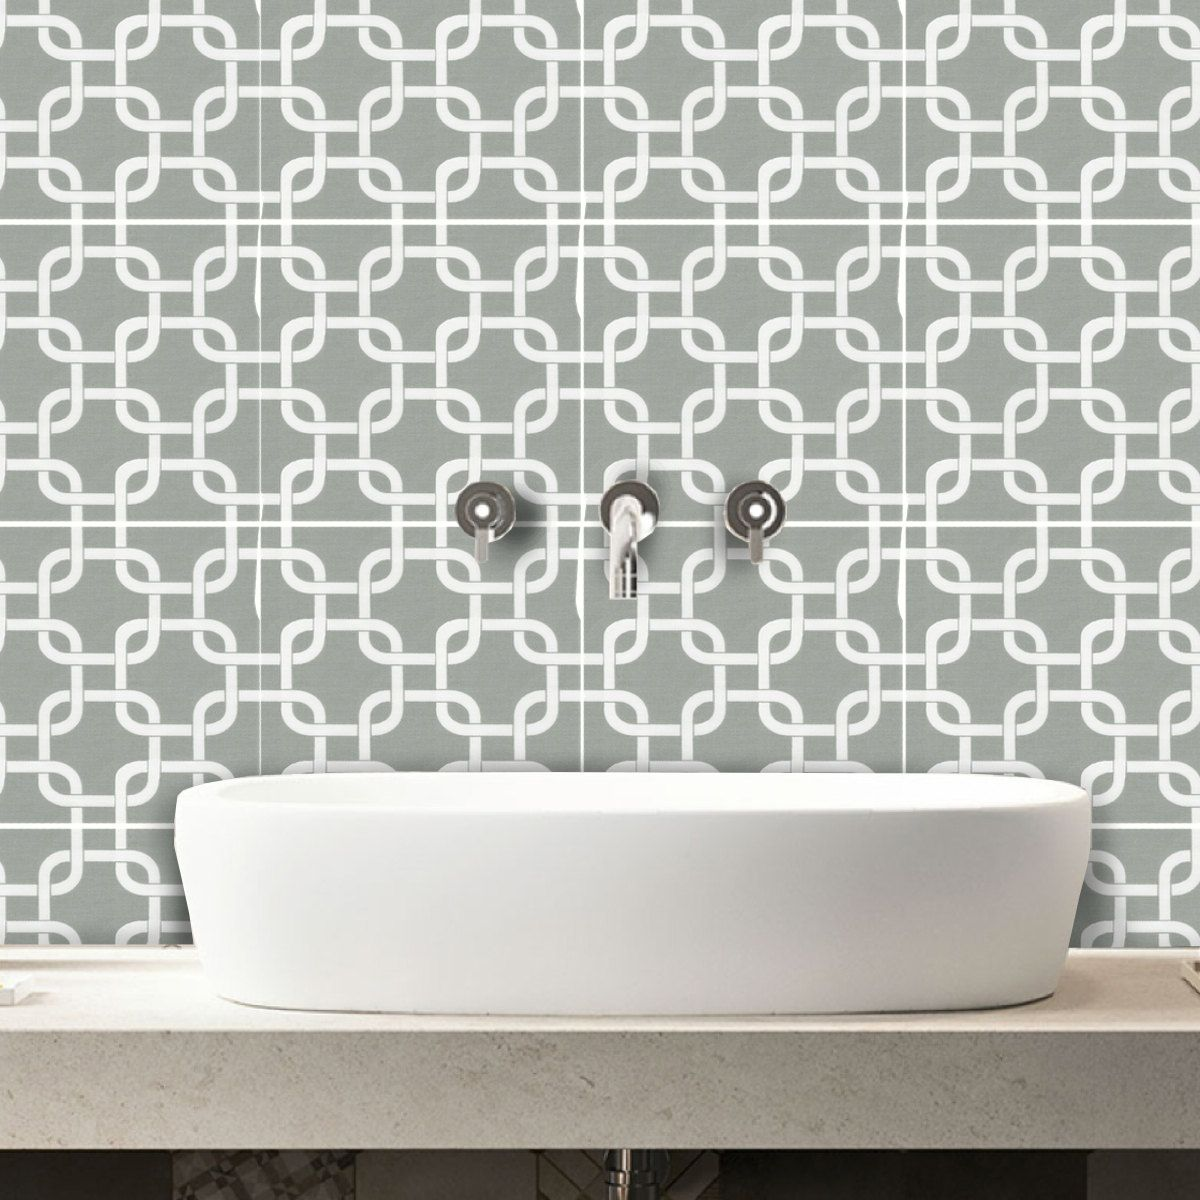 Awesome Tile Stickers   Decal For Kitchen/Bathroom Back Splash Or Floor: BX303 Sage  By